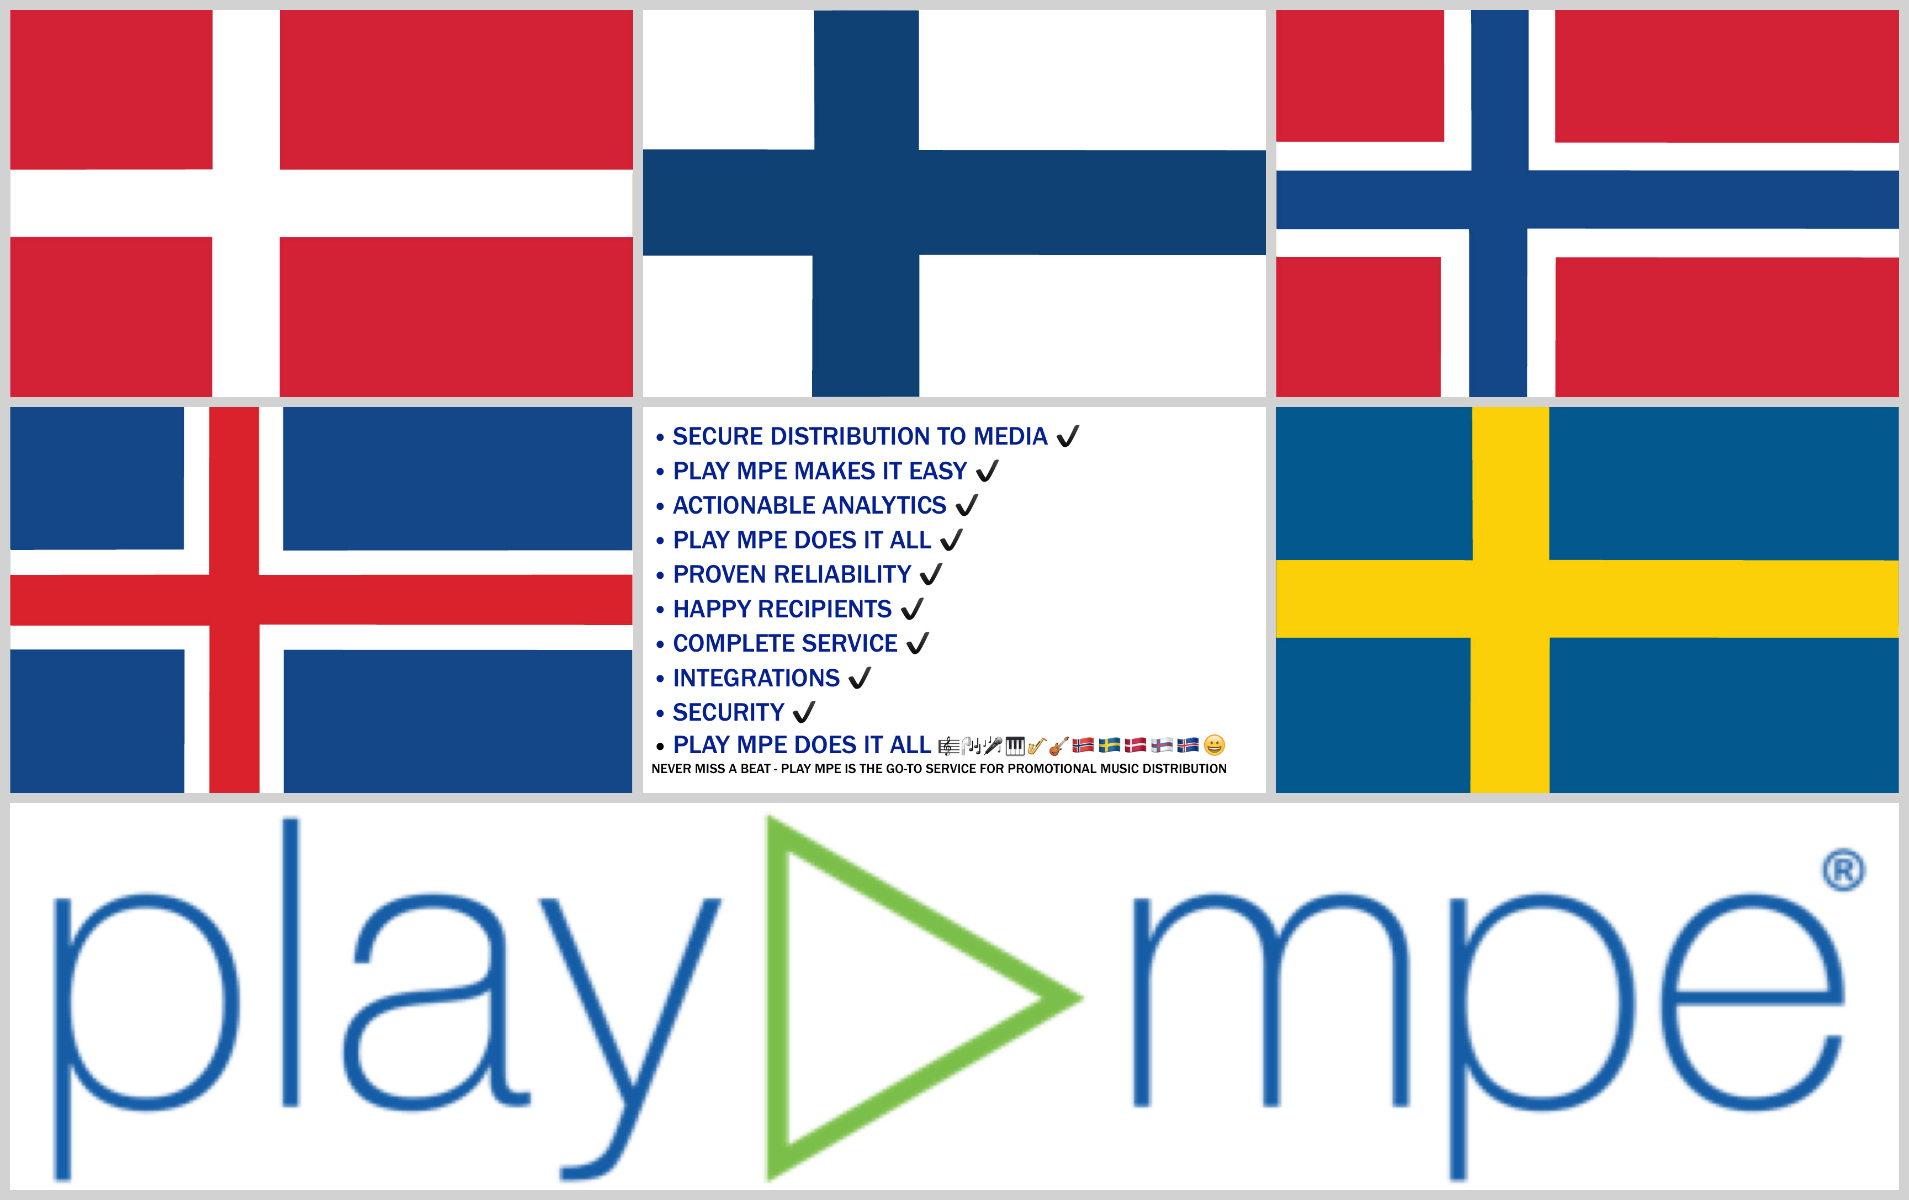 Play MPE Distribution in Scandinavia | Music Quay